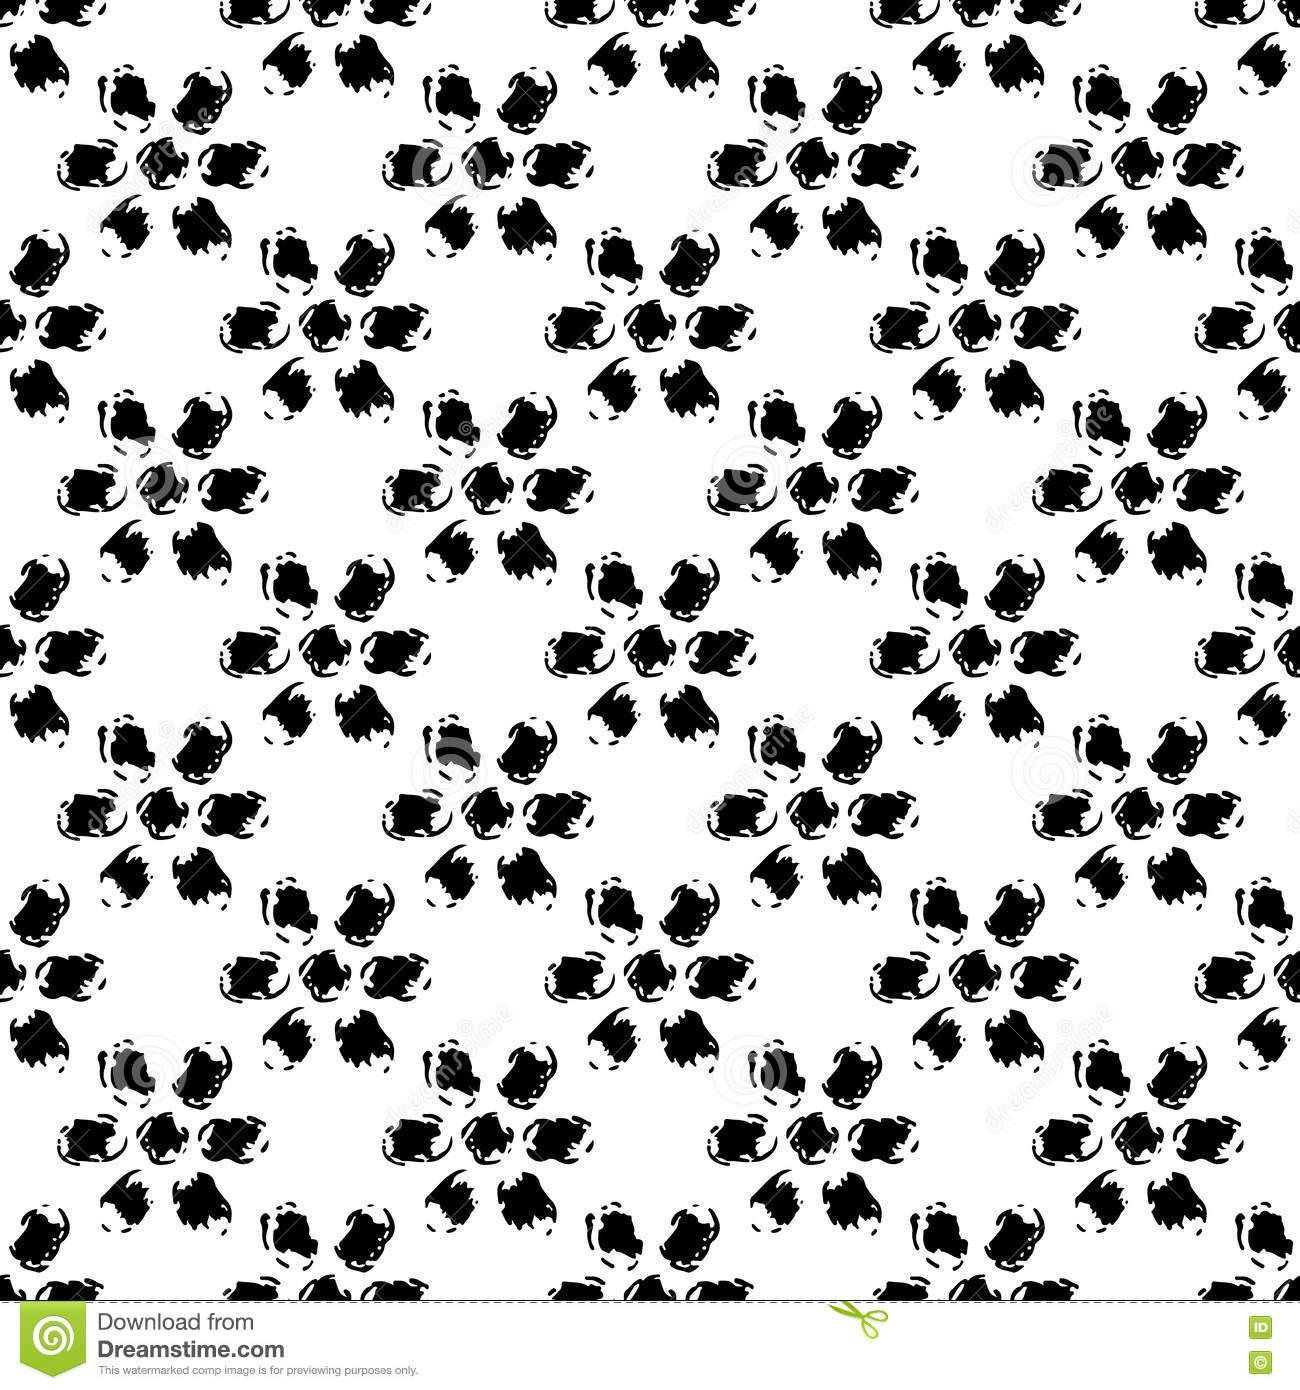 Simple black and white grunge hand drawn flowers seamless pattern download comp mightylinksfo